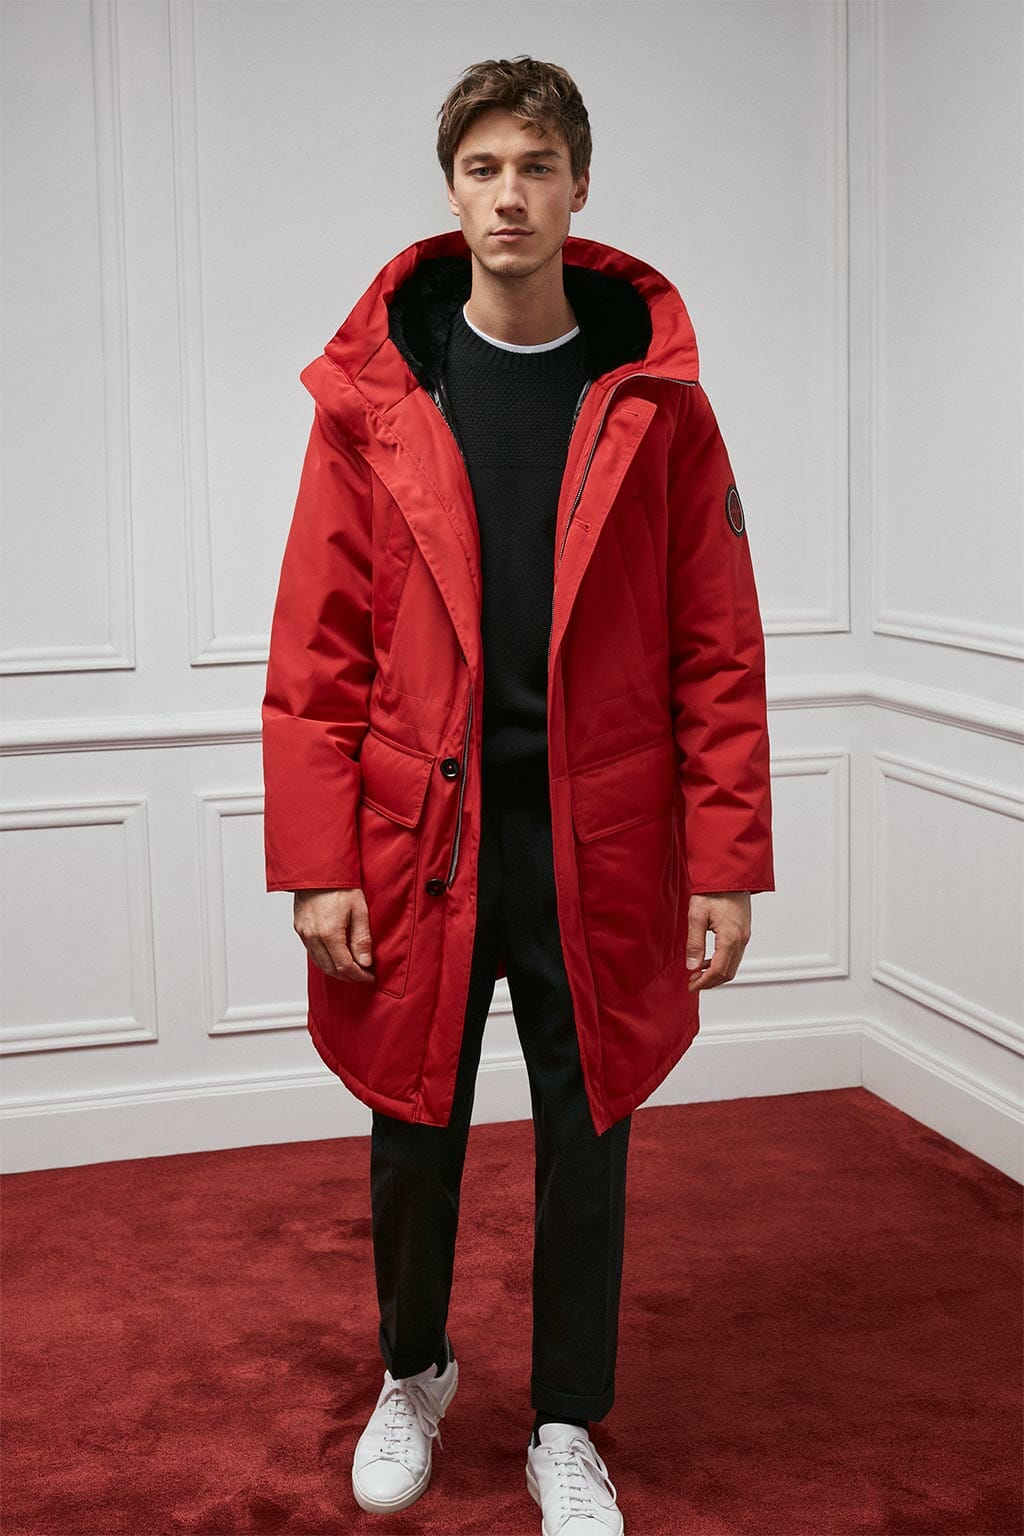 CH Carolina Herrera. New Menswear Collection Spring Preview. Look 06